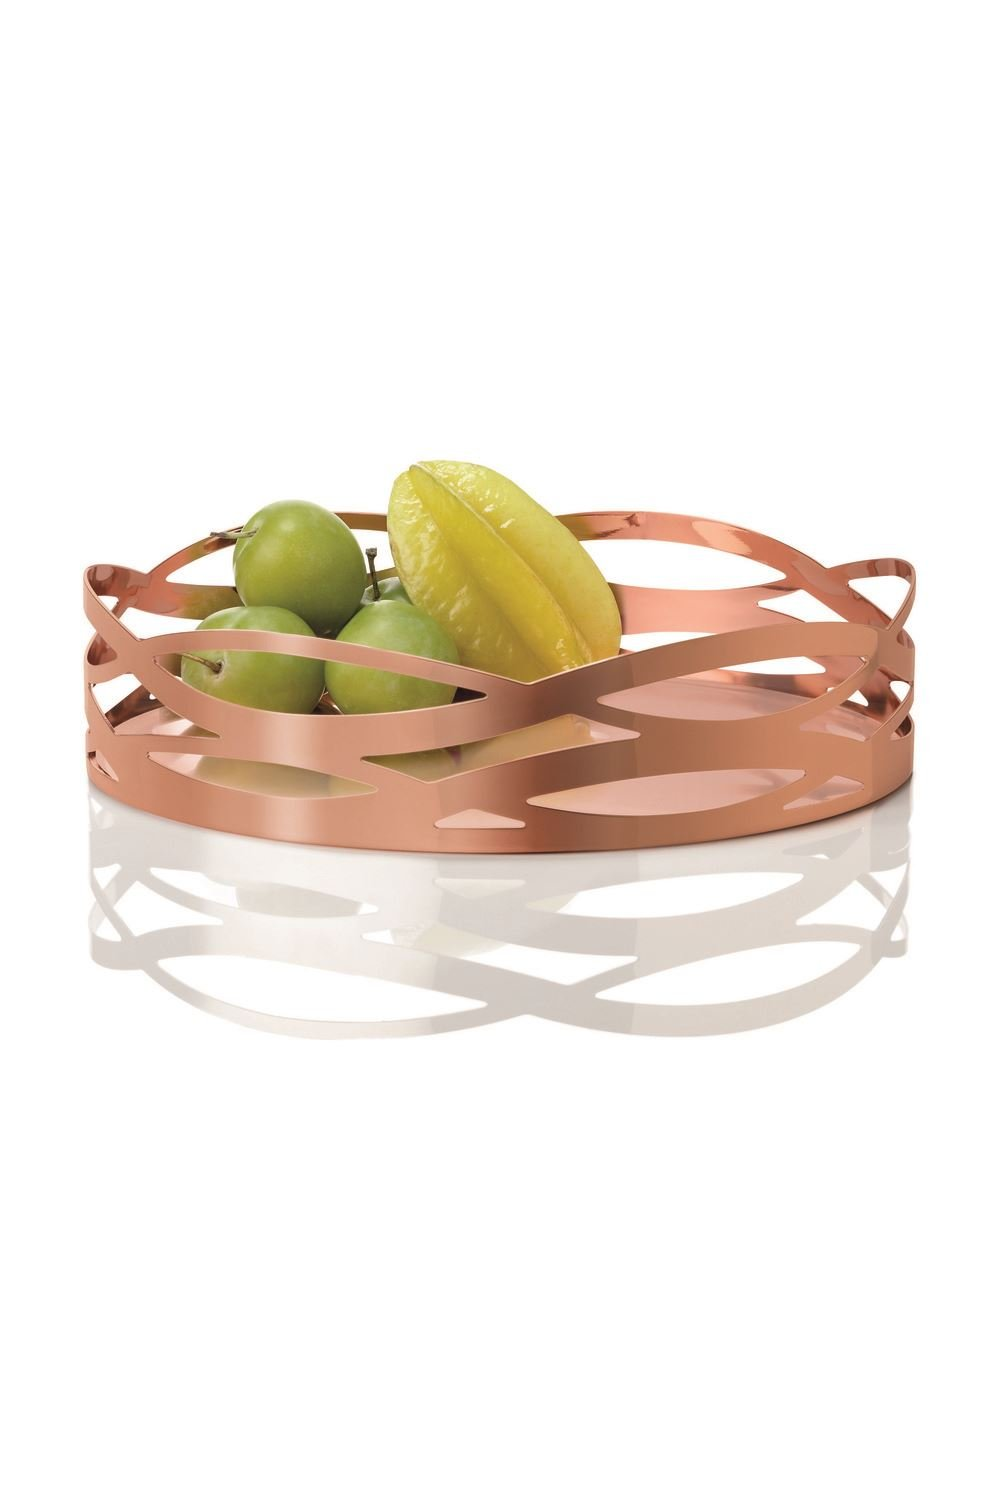 Stelton 1-Piece Copper-Covered Steel with Dirt-Repellent Coating Tangle Dish, Copper KitchenCenter x-57